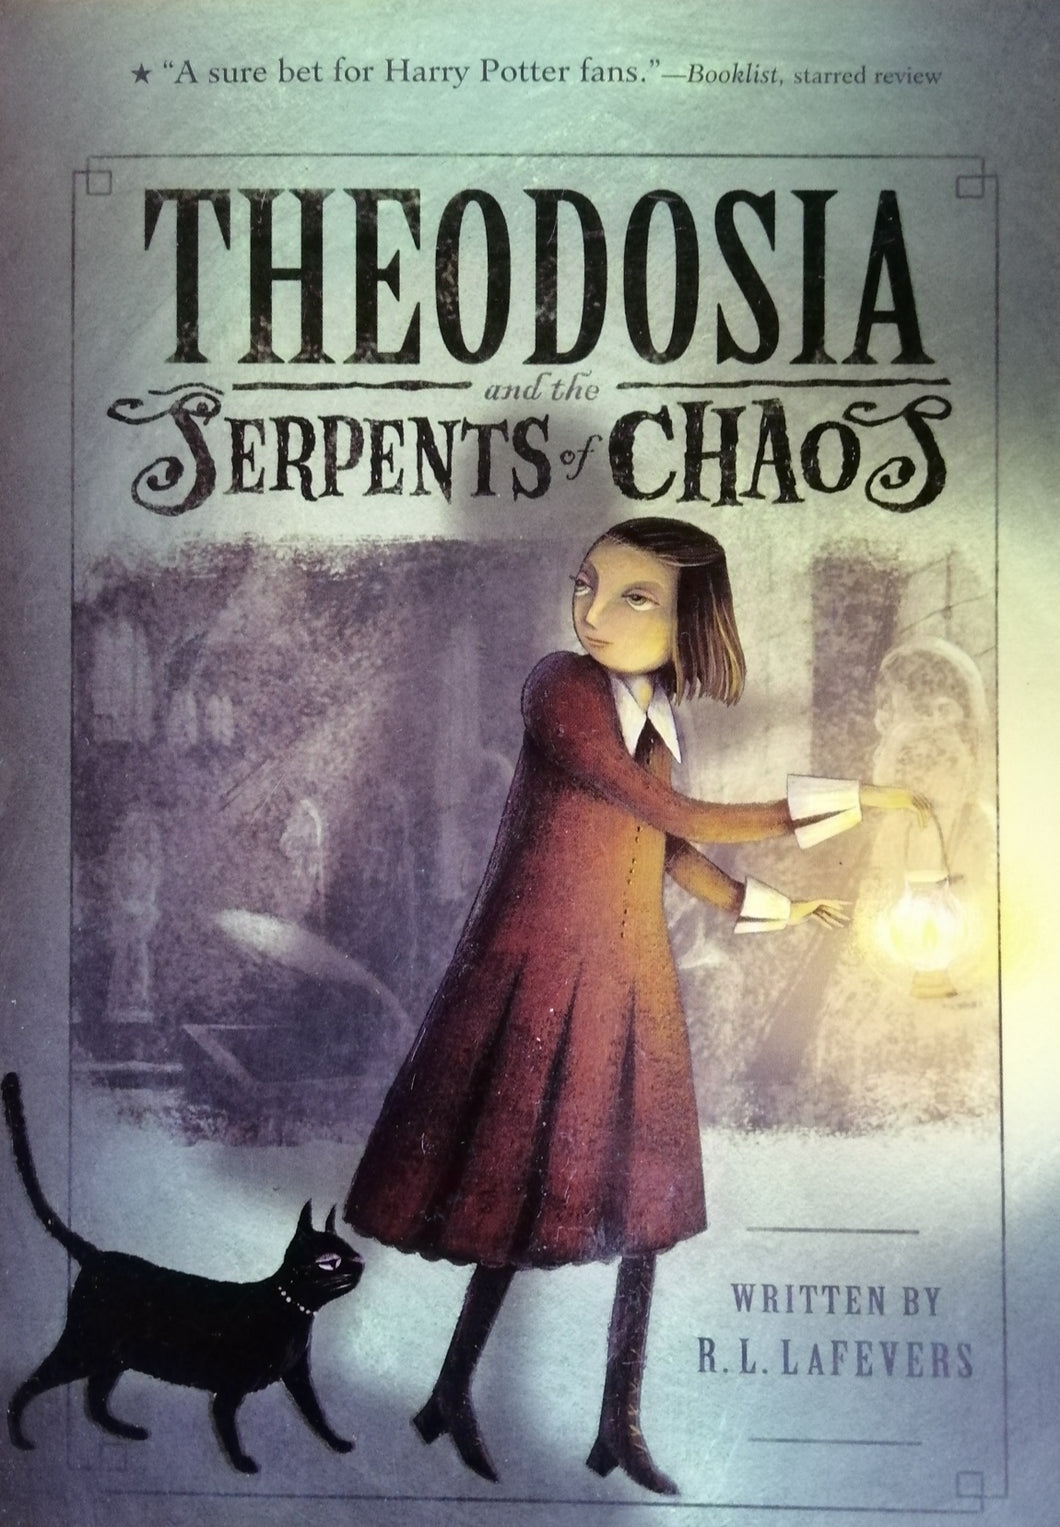 THEODOSIA and the Serpents of Chaos by R.L.Lafevers